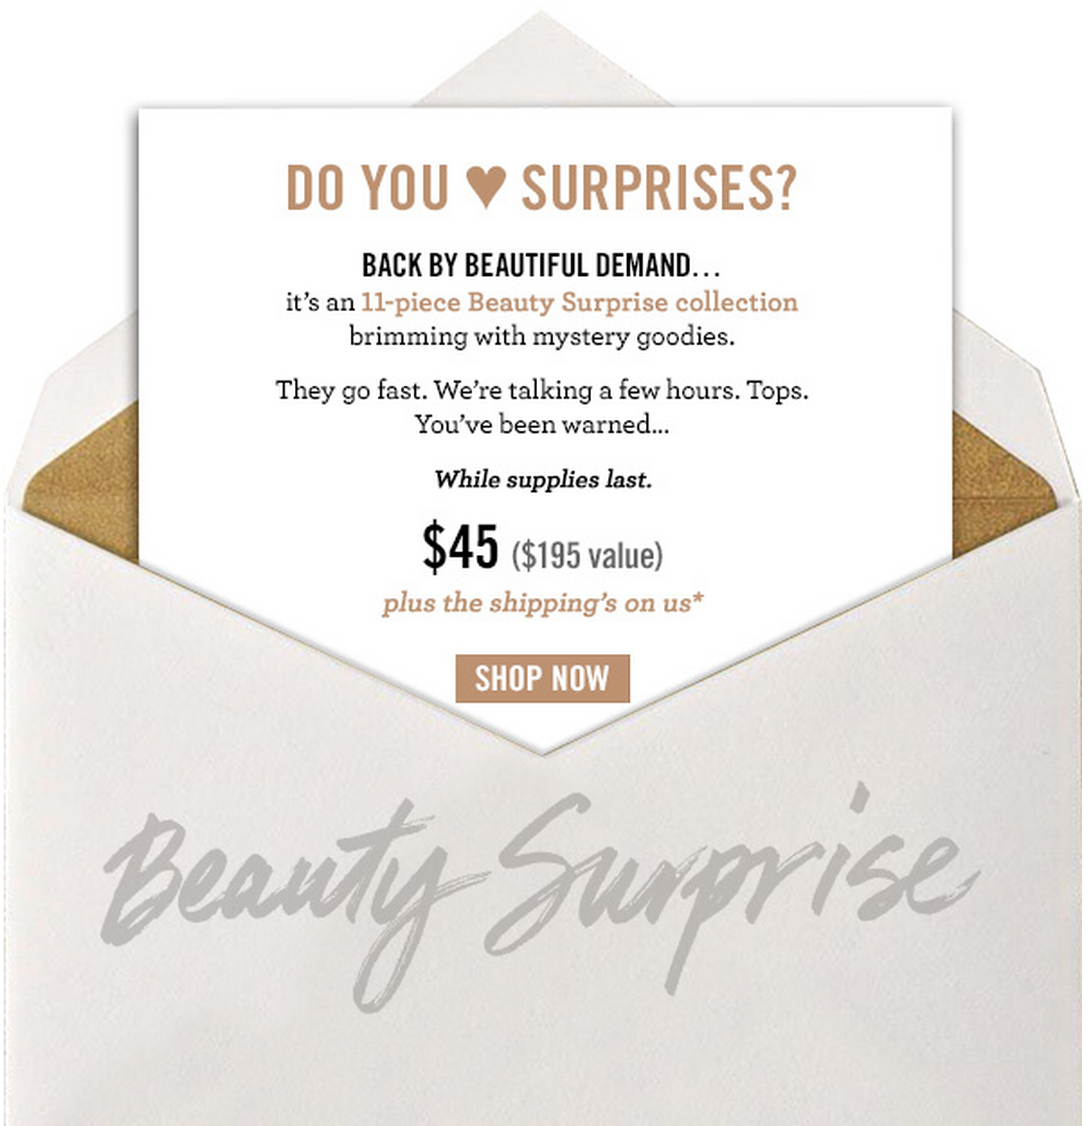 Bare Minerals Mystery Box Available Now!